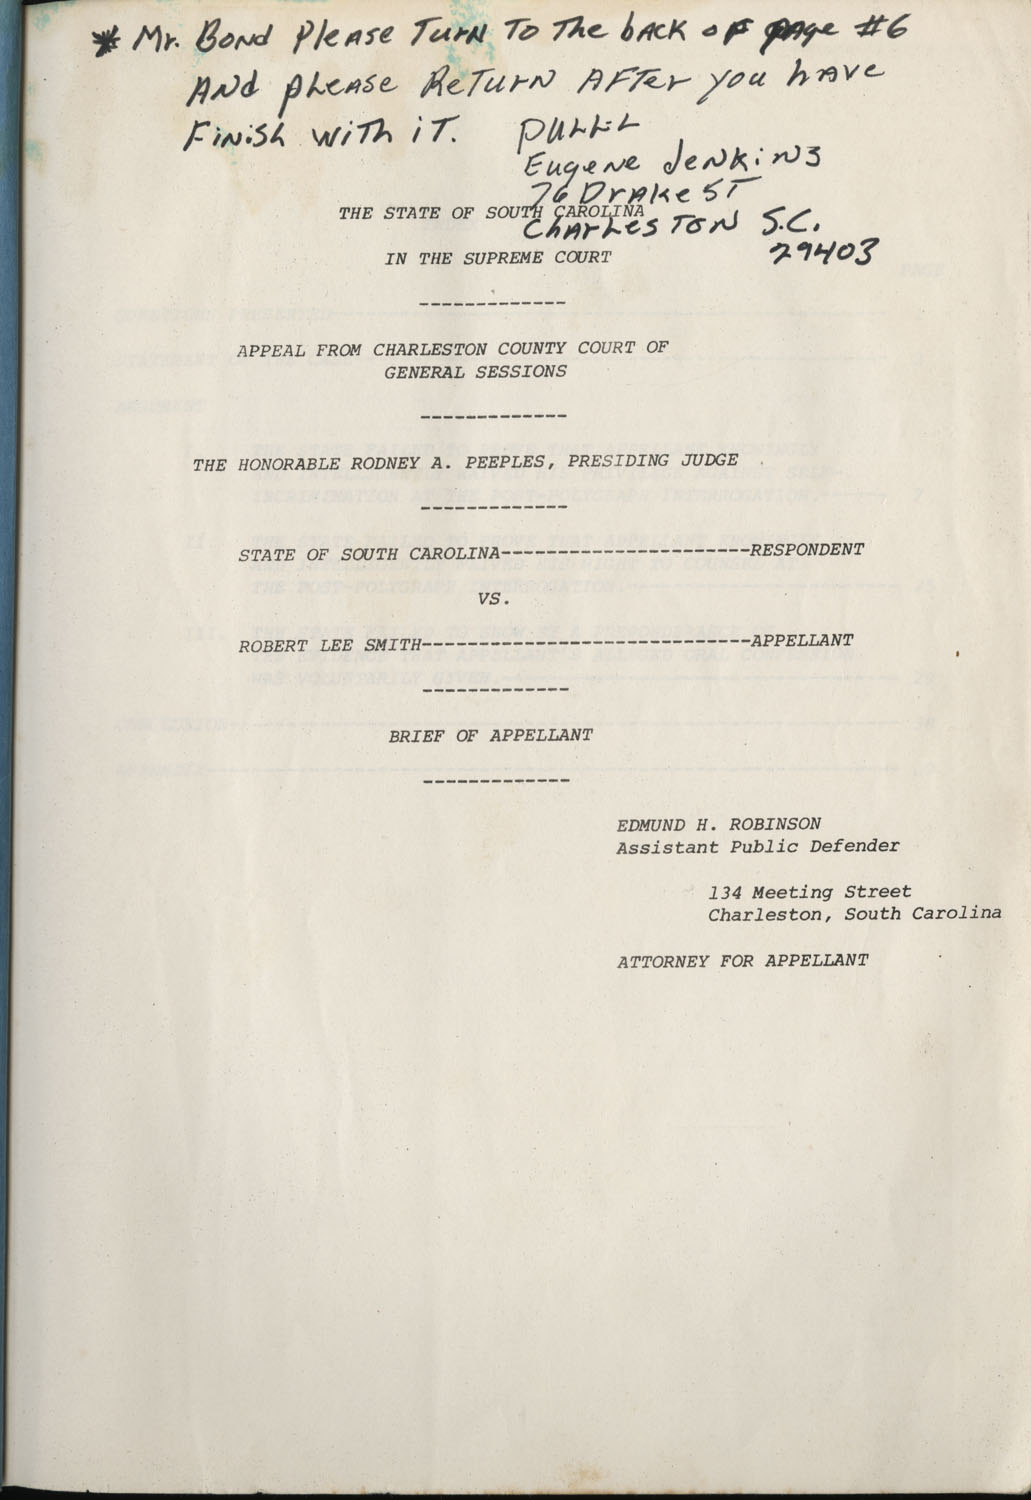 State of South Carolina vs. Robert Lee Smith, Brief of Appellant, Title Page